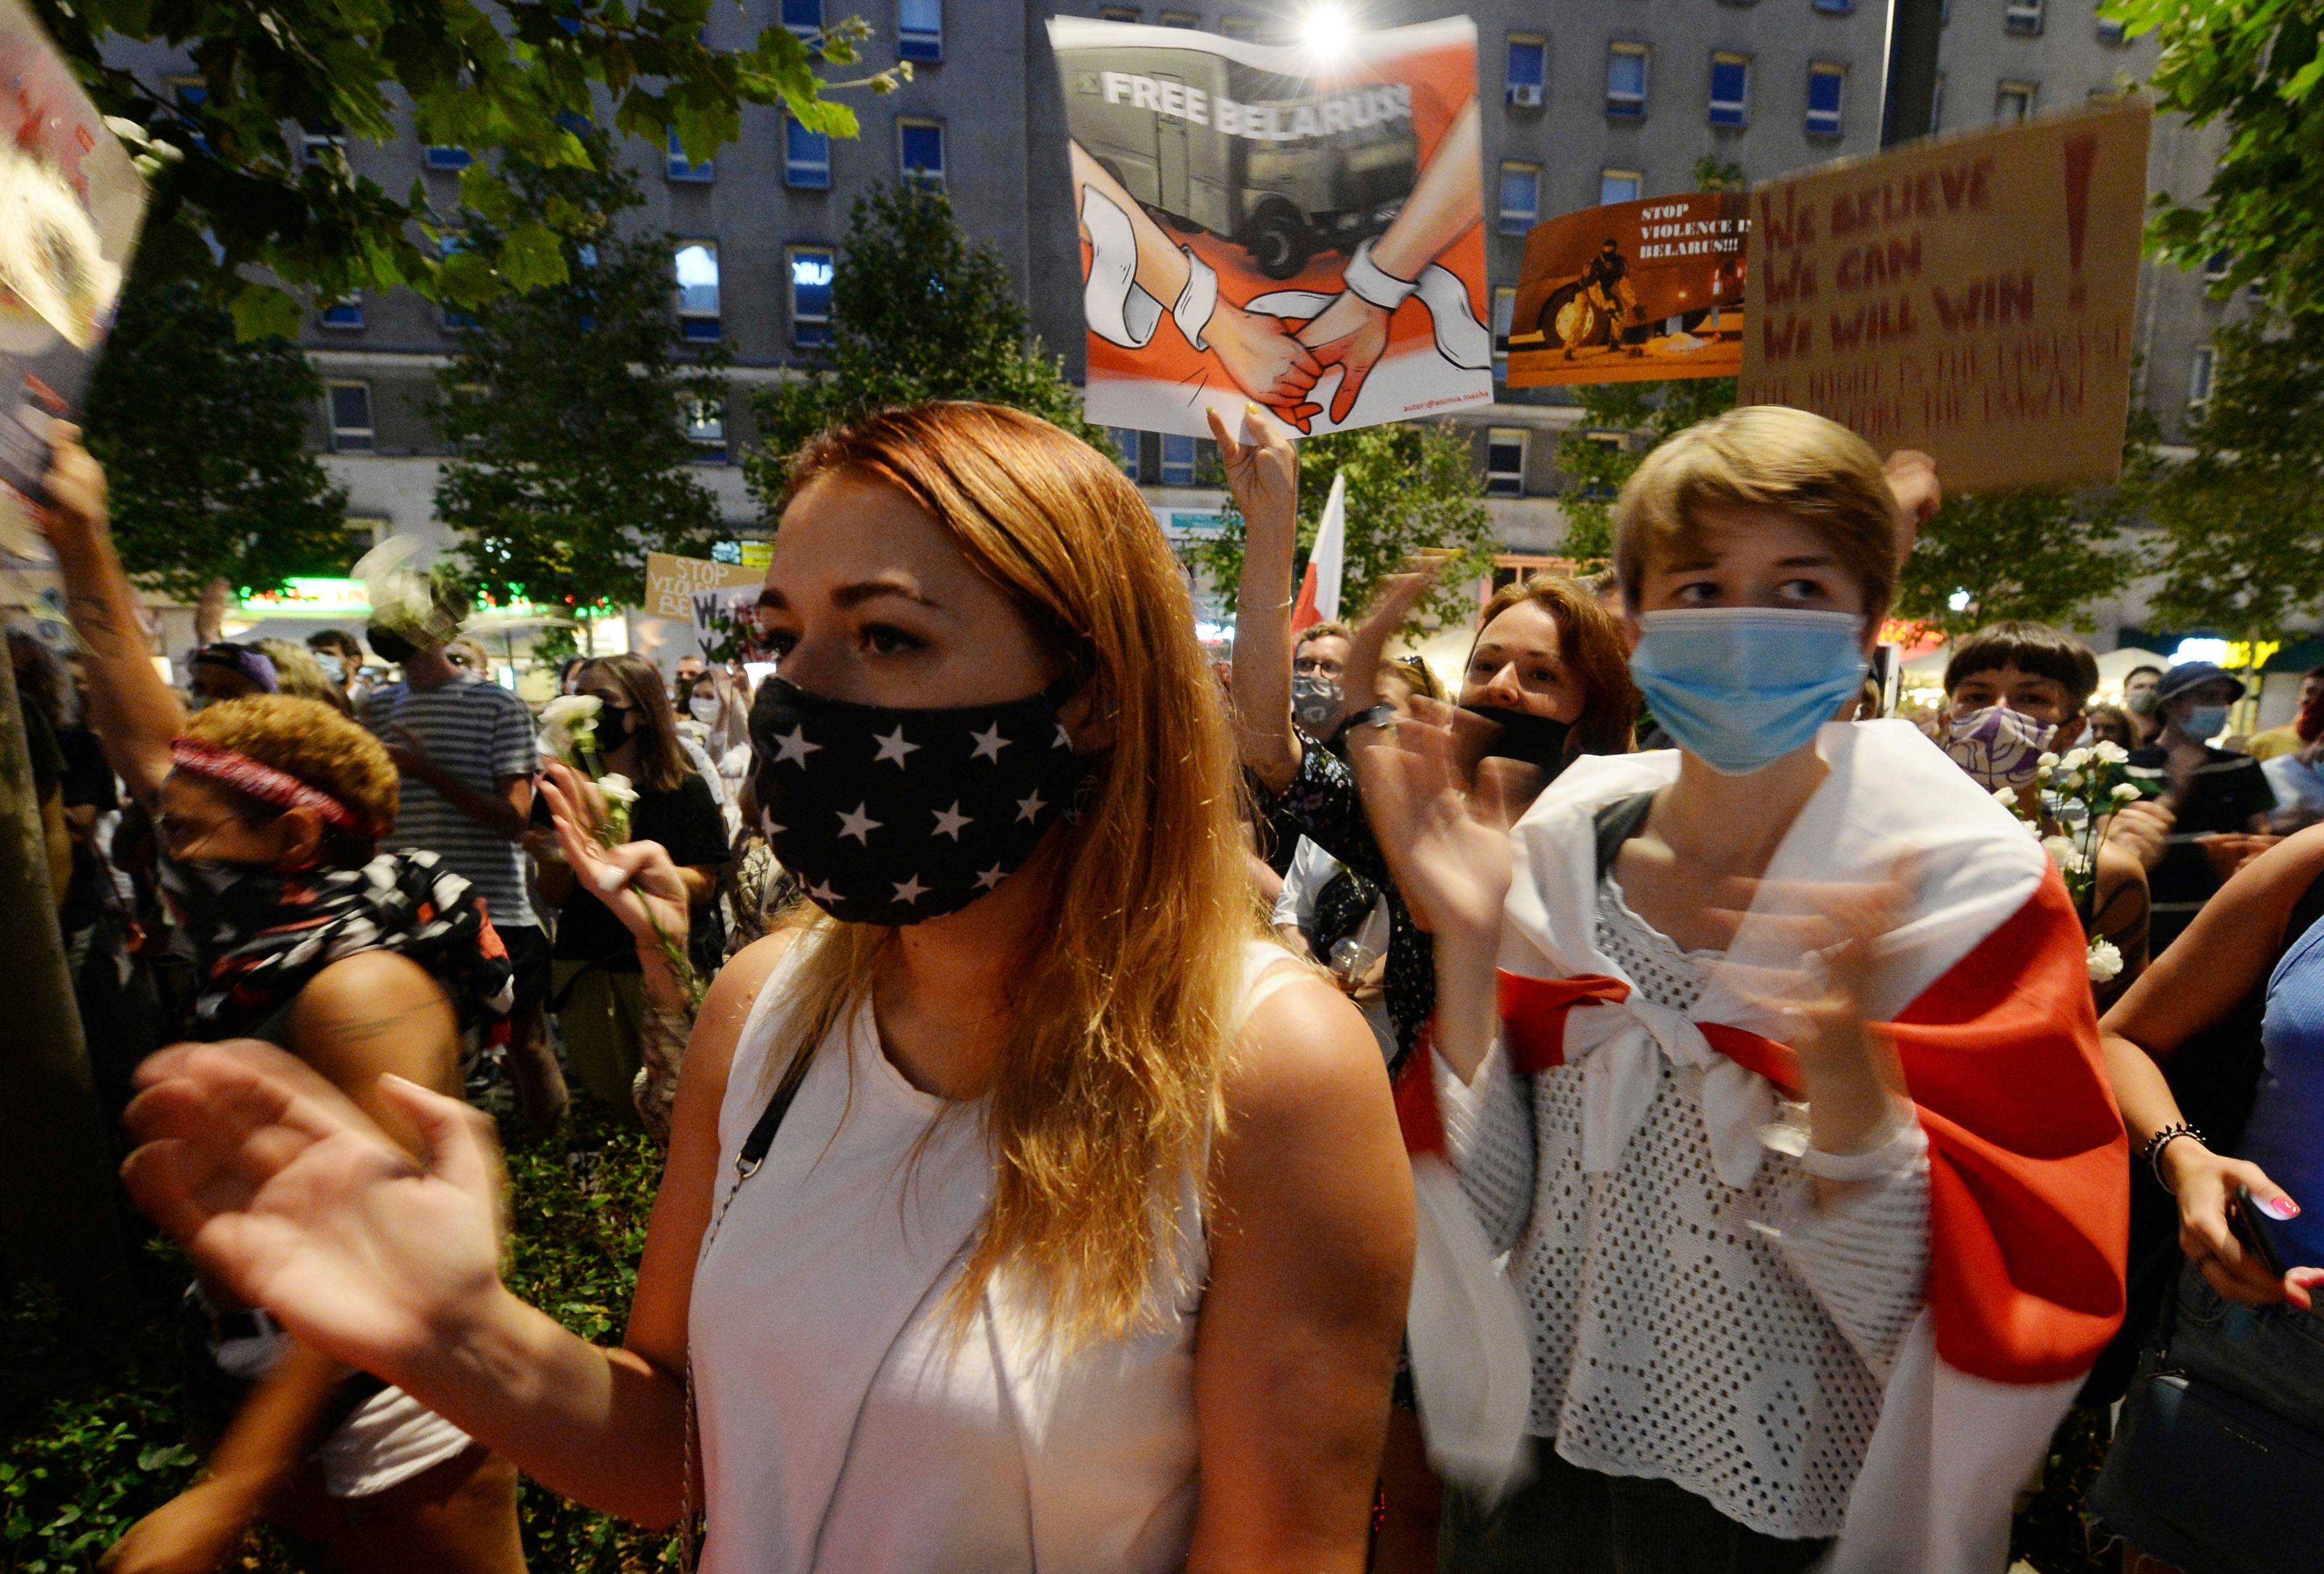 People demonstrate in support of Belarus protesters in Warsaw, Poland, on 13 August.